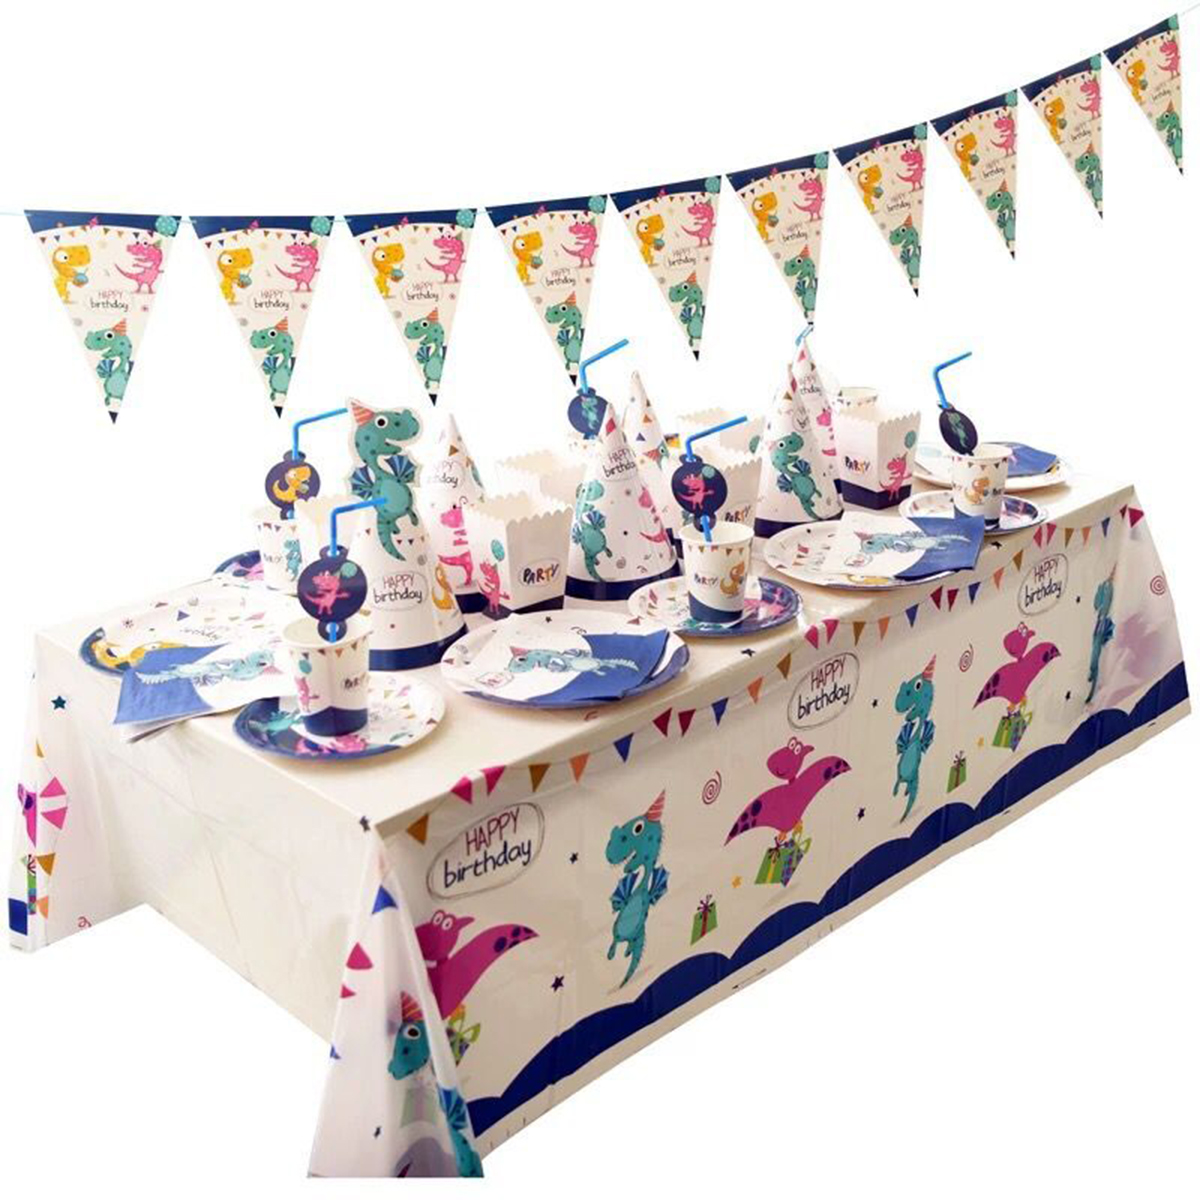 2019 Dinosaur Themed Dinnerware Set Kids Birthday Party Supplies Plastic Knives Spoons Forks Paper Plates Cups, Serves 16 Guests